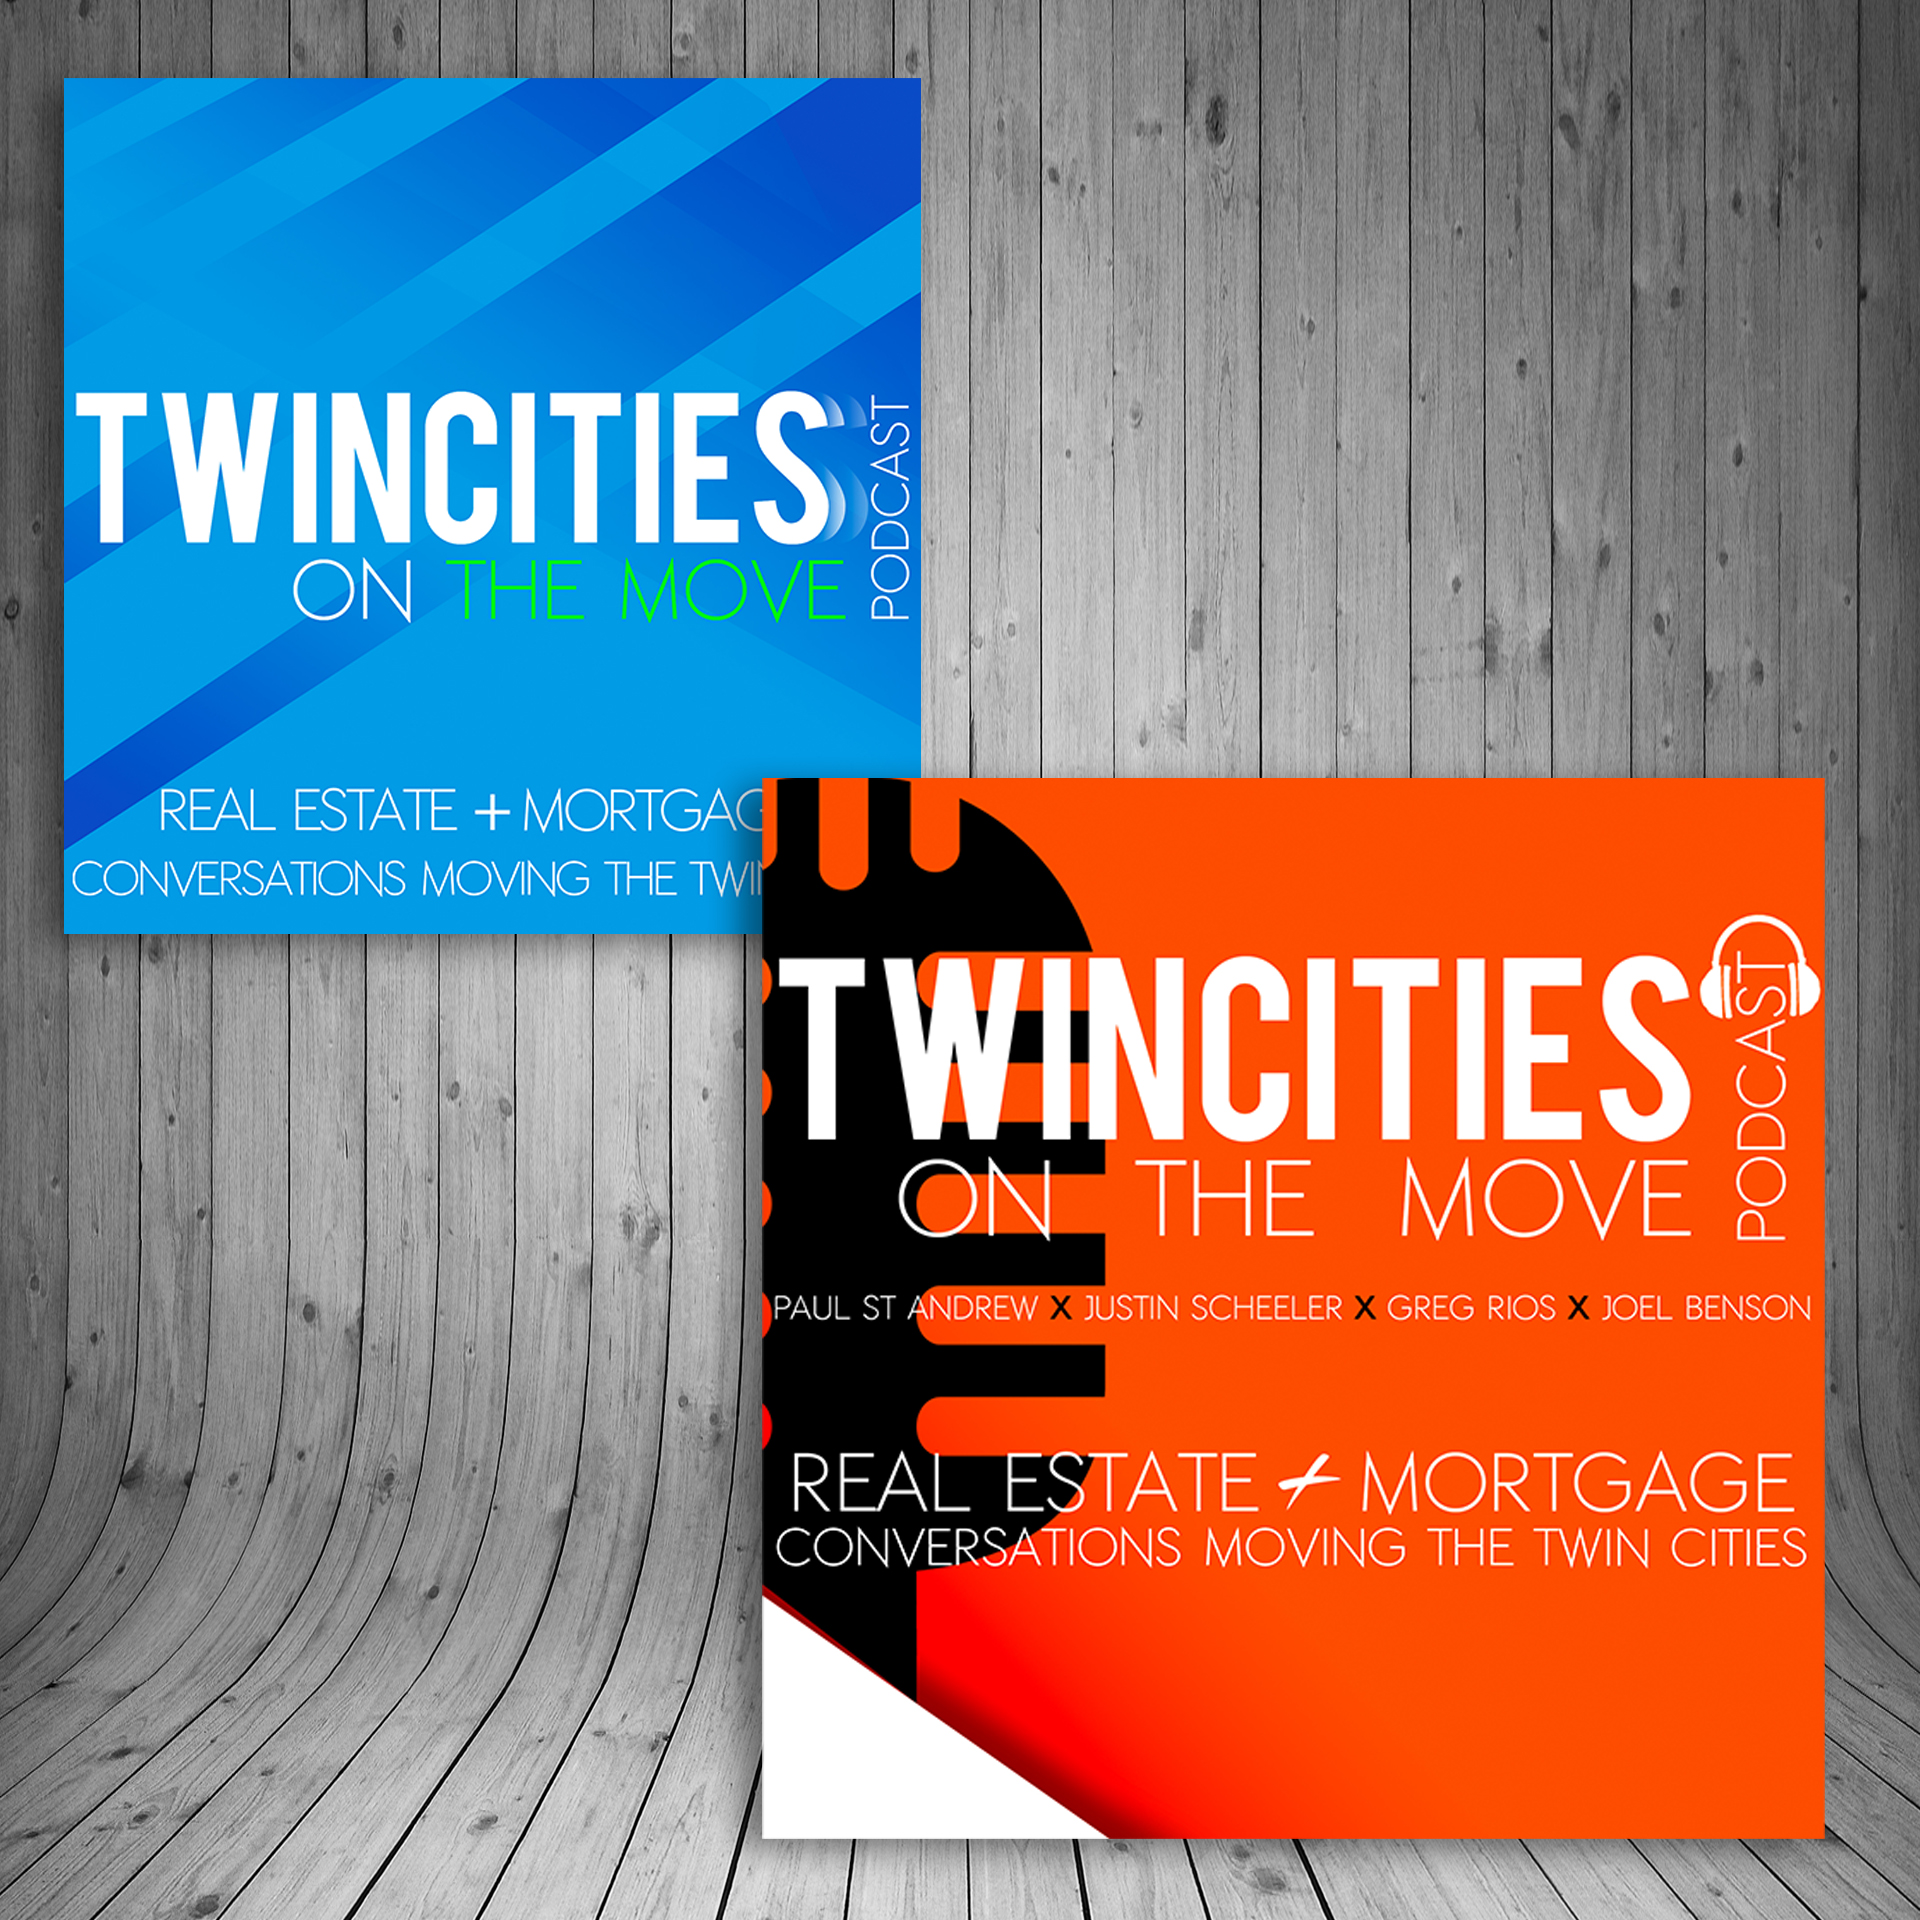 Twin Cities on the Move PodCast Brand Design